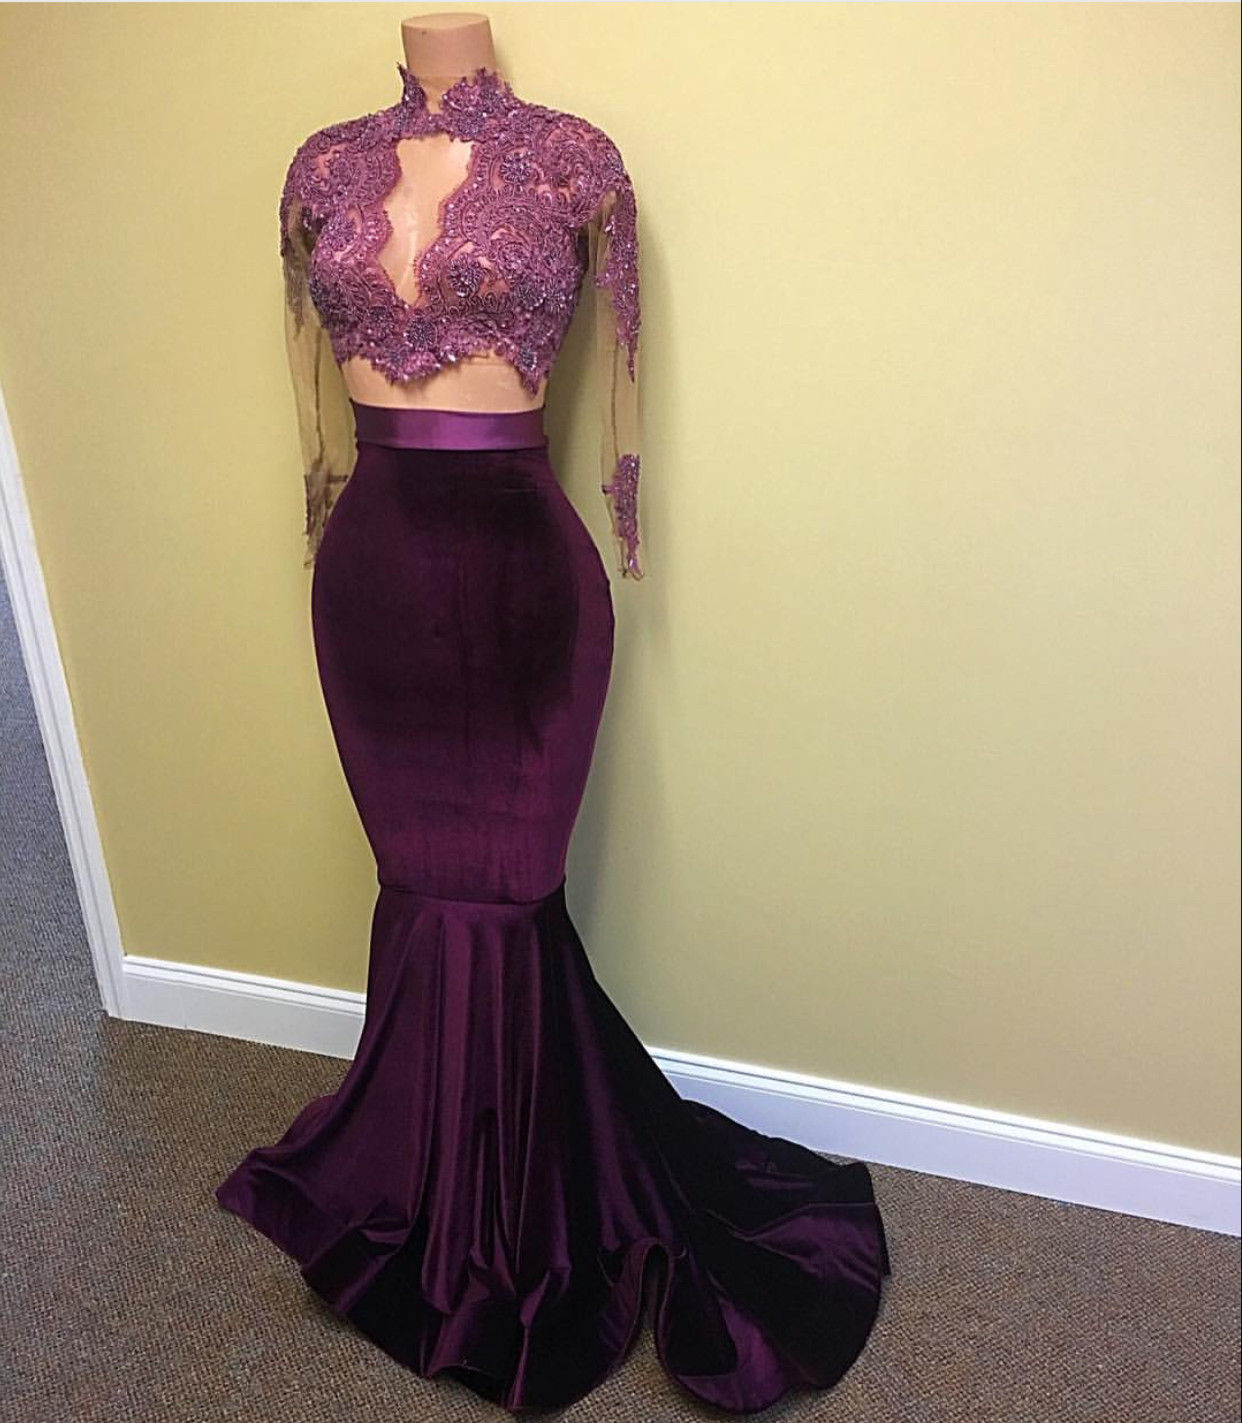 95b5e9129e4 Purple Velvet Prom Dress Two Piece Lace Pageant Dresses on Luulla